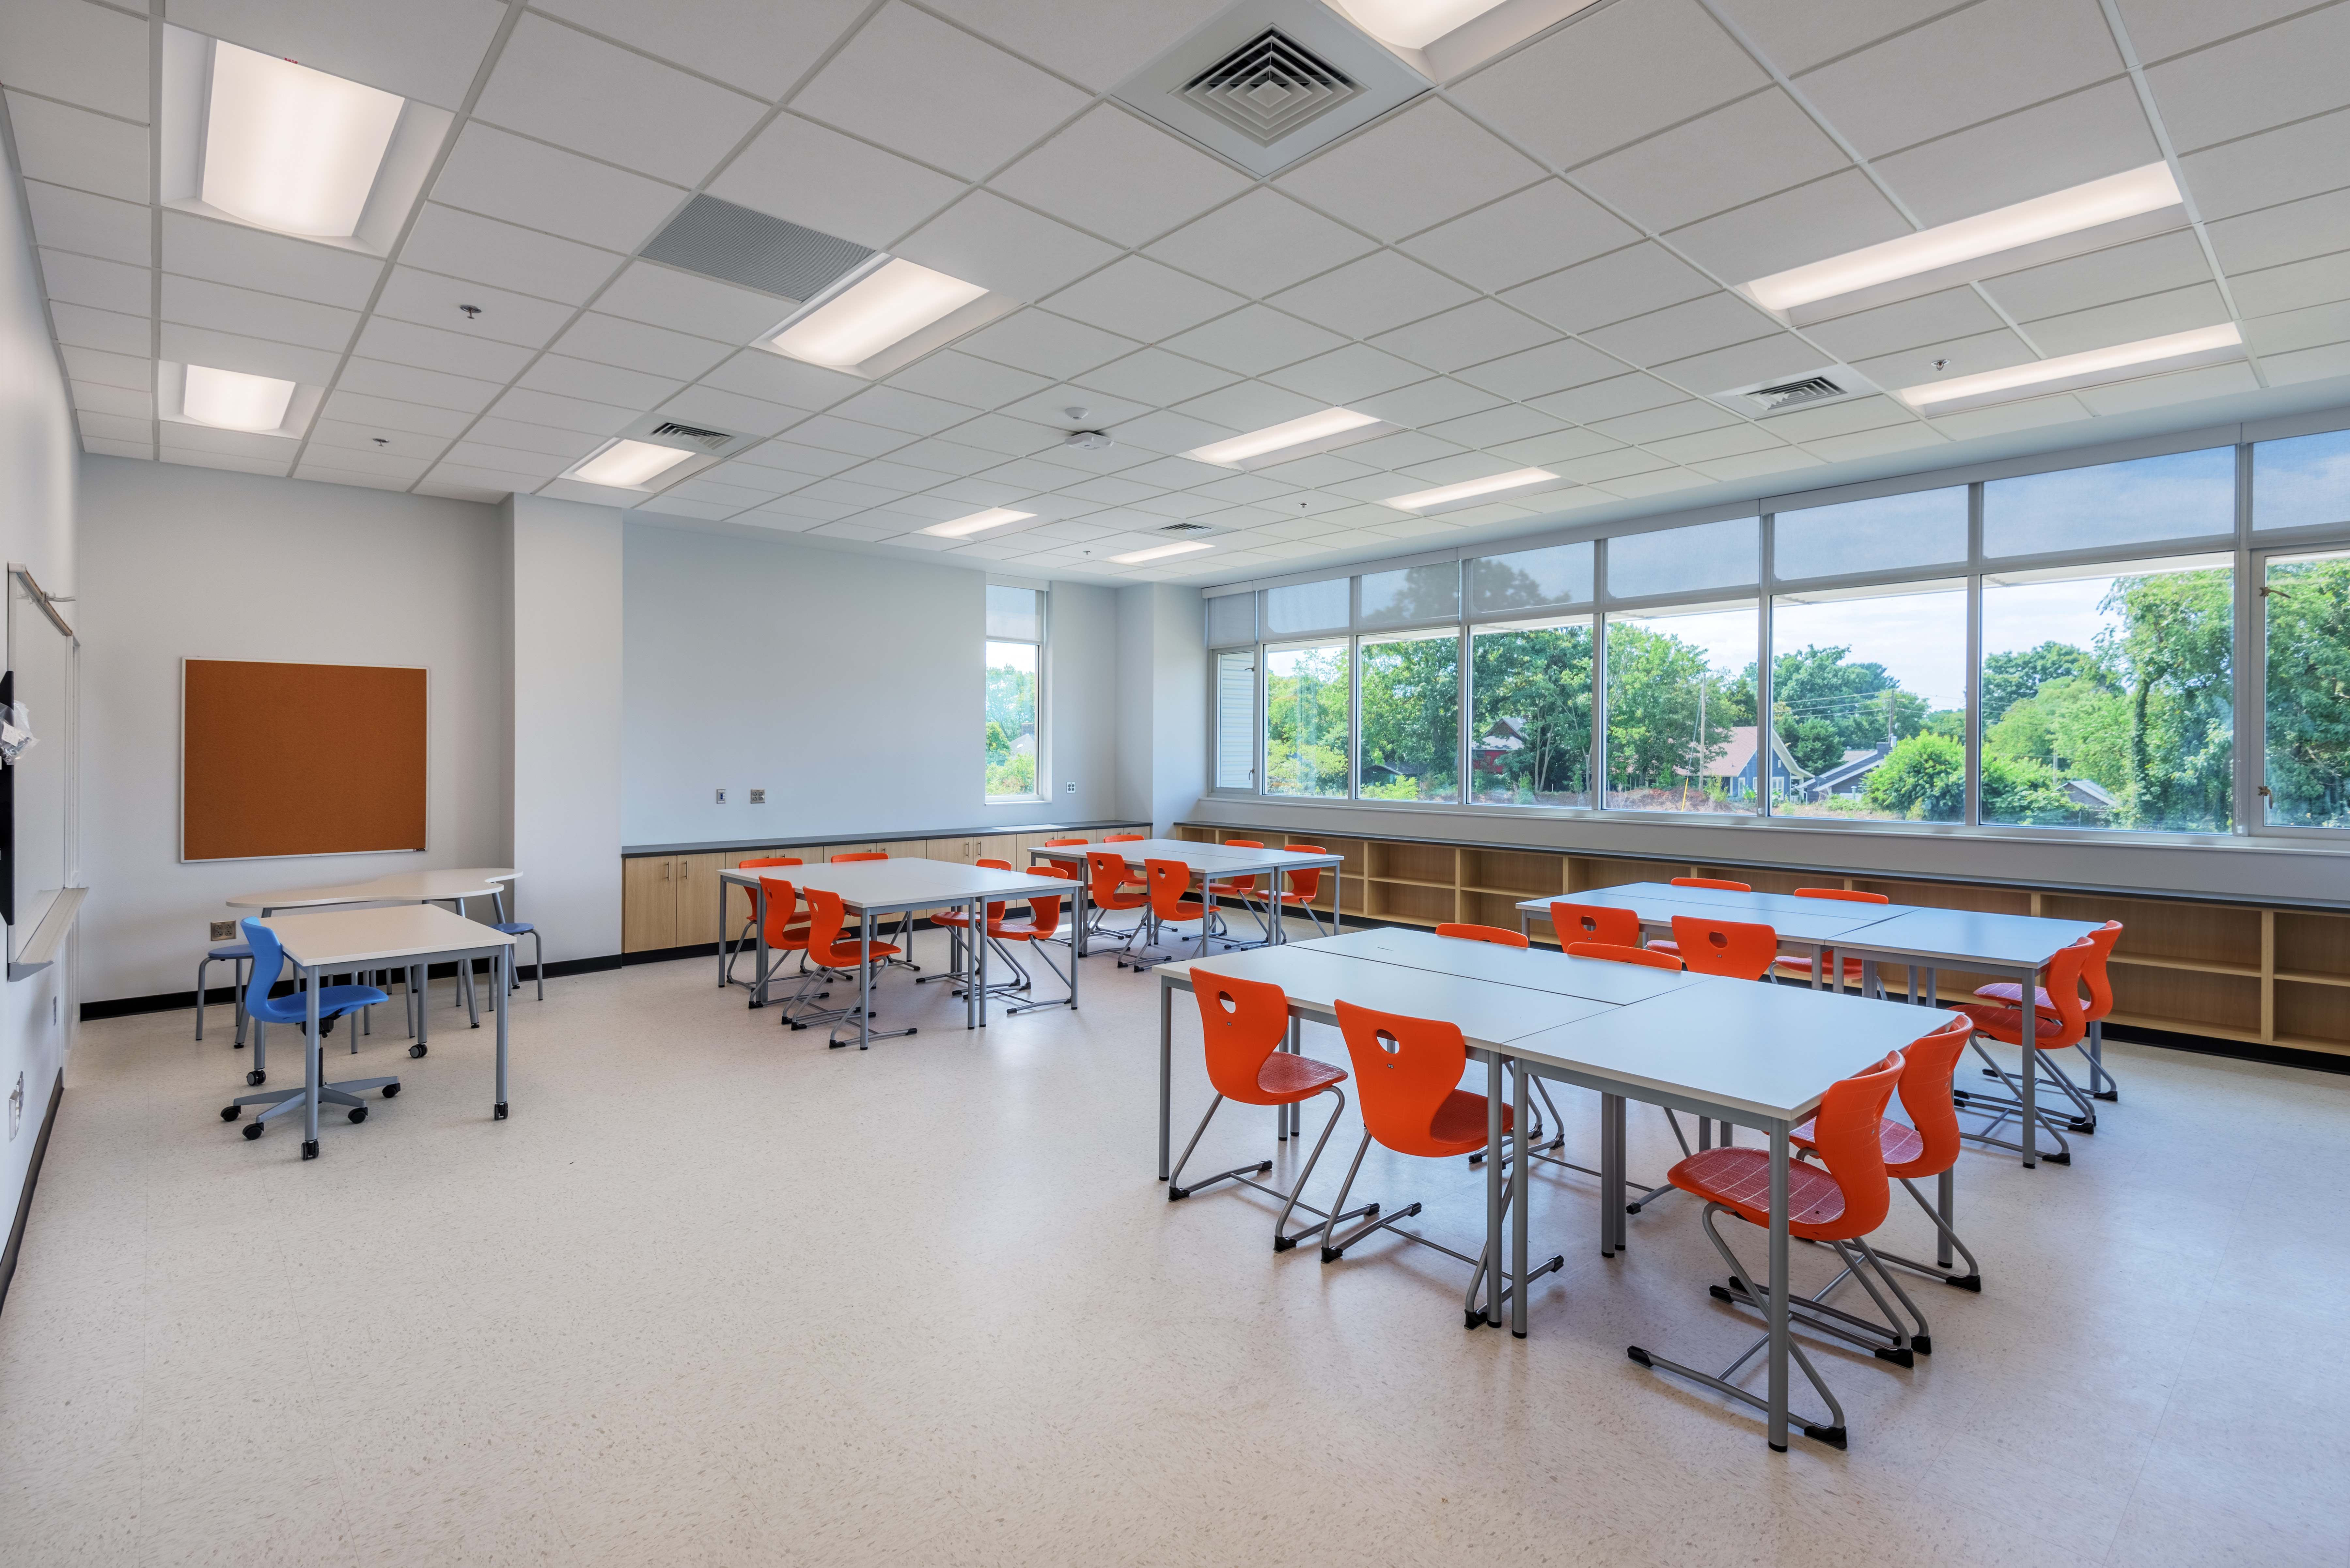 Classroom Design Project ~ Asheville middle school barnhill contracting company